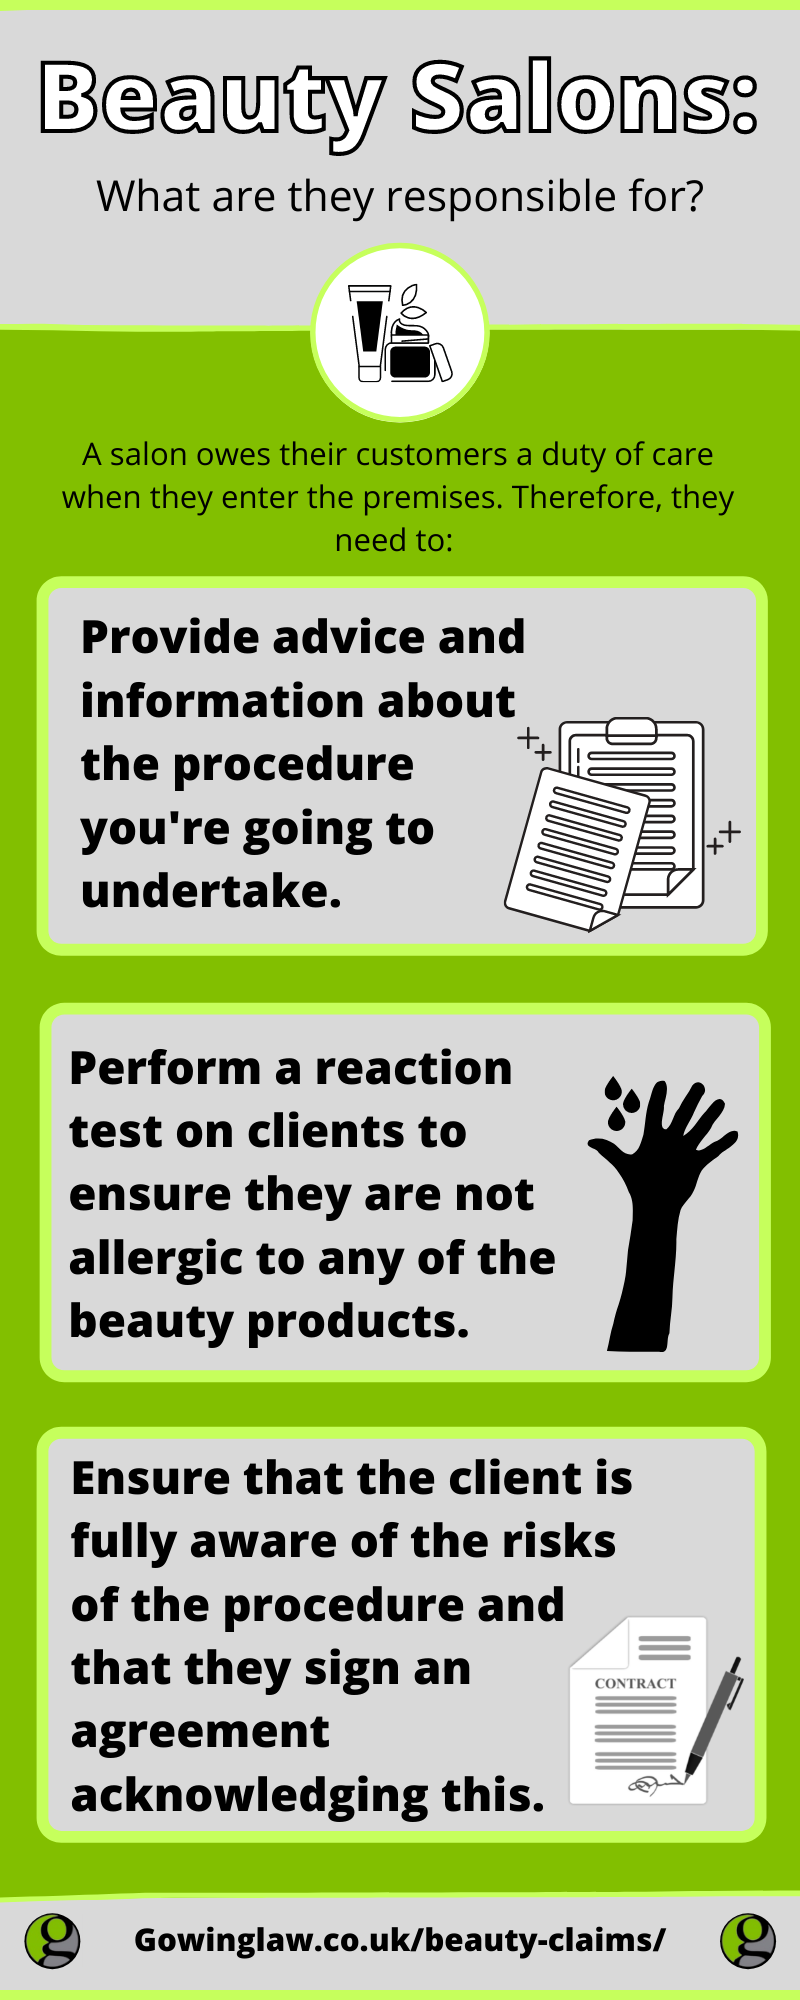 Beauty Claims and salon responsibilities infographic